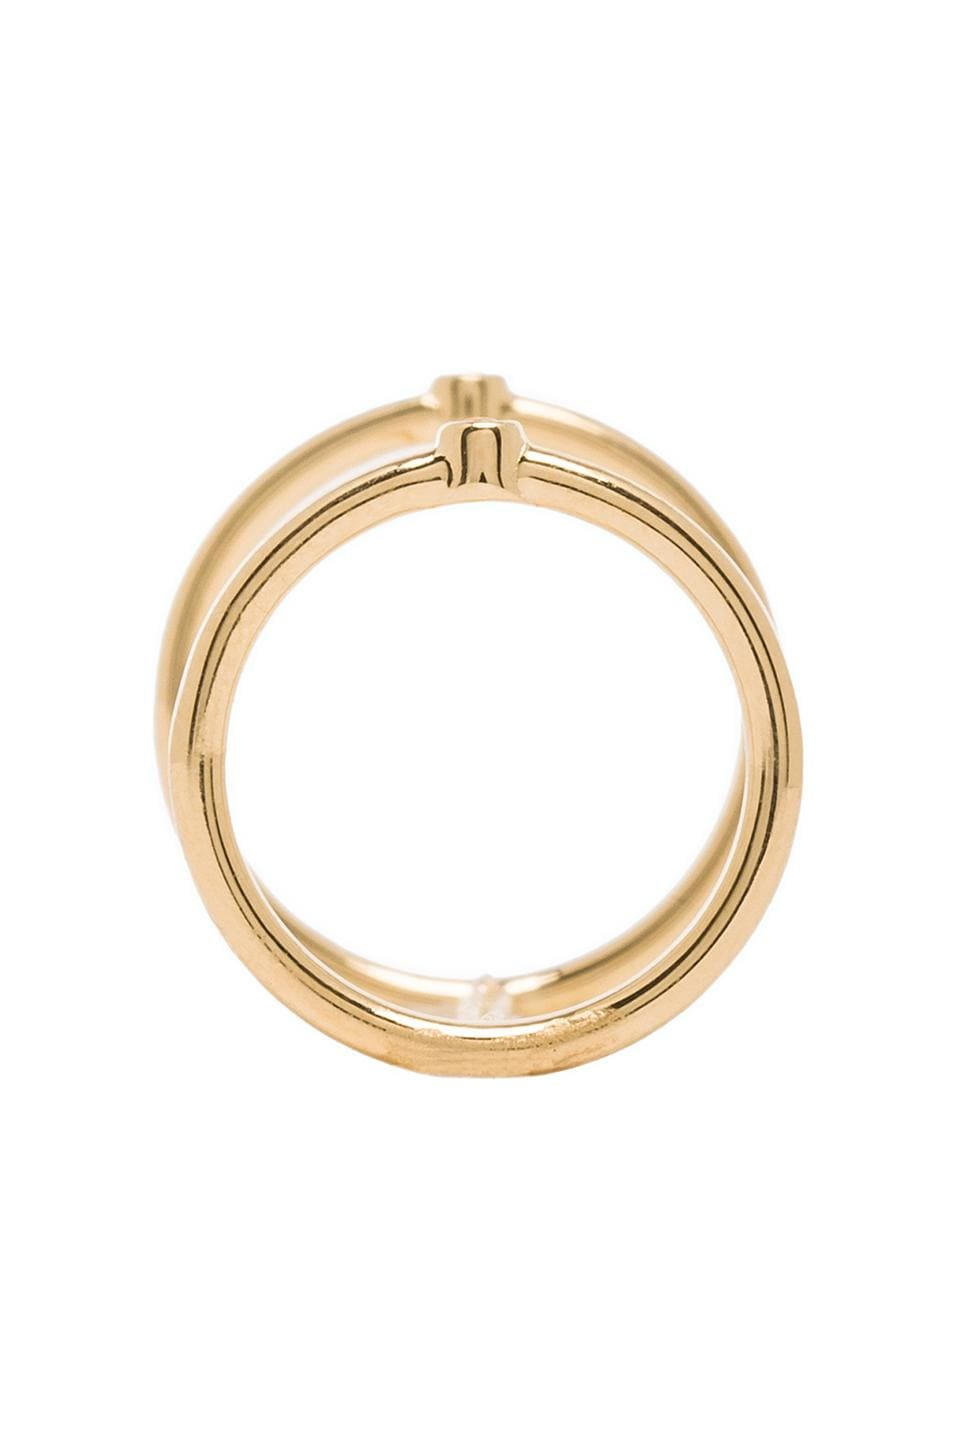 Elizabeth and James Miro Knuckle Ring in Gold